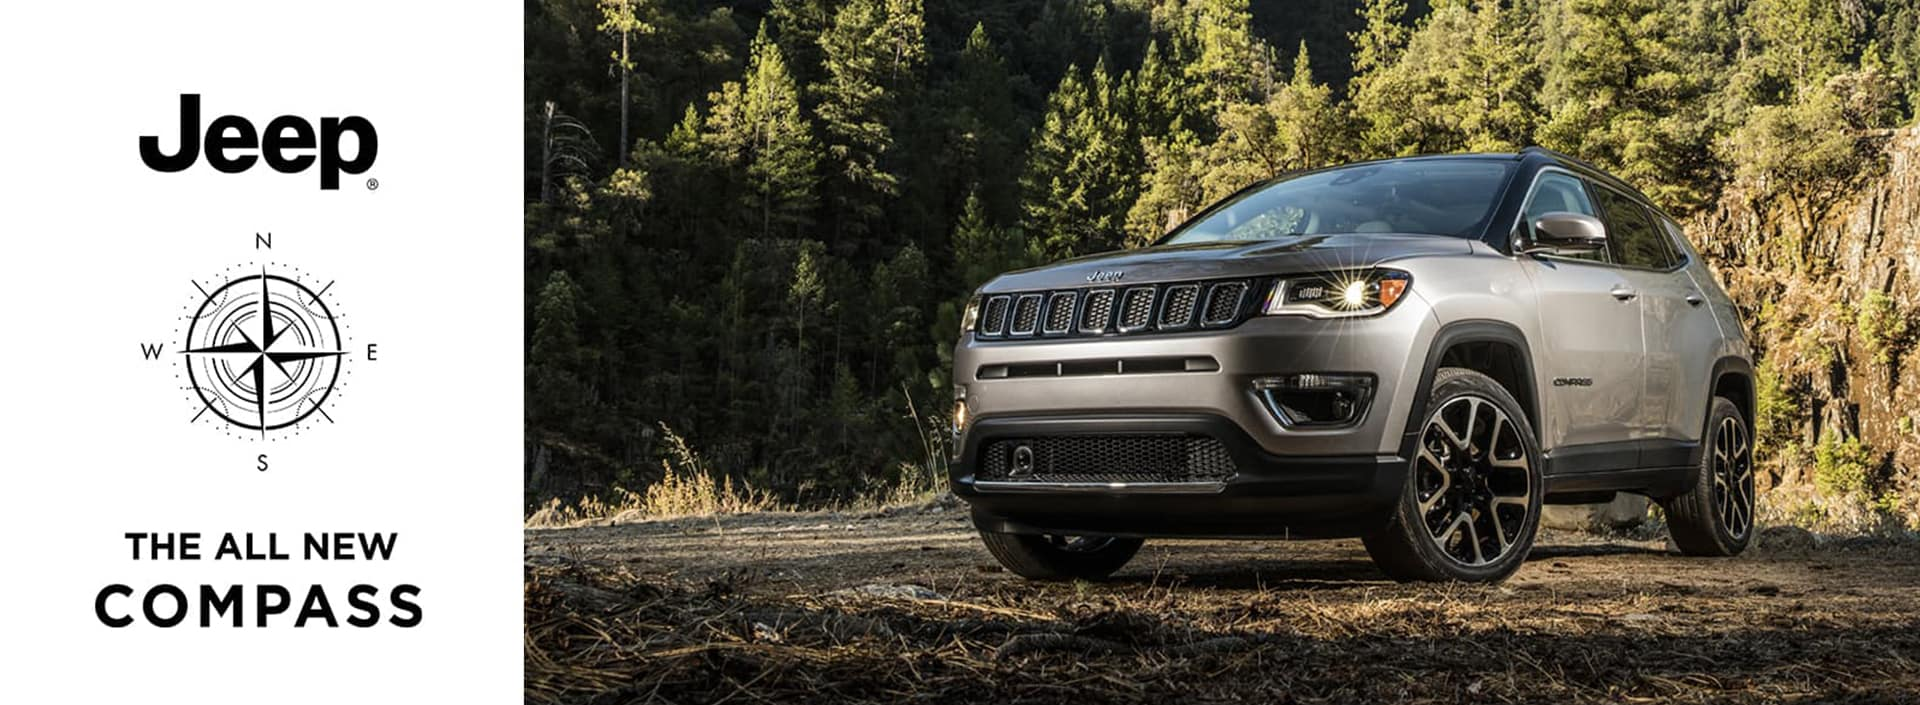 Jeep Compass Banner